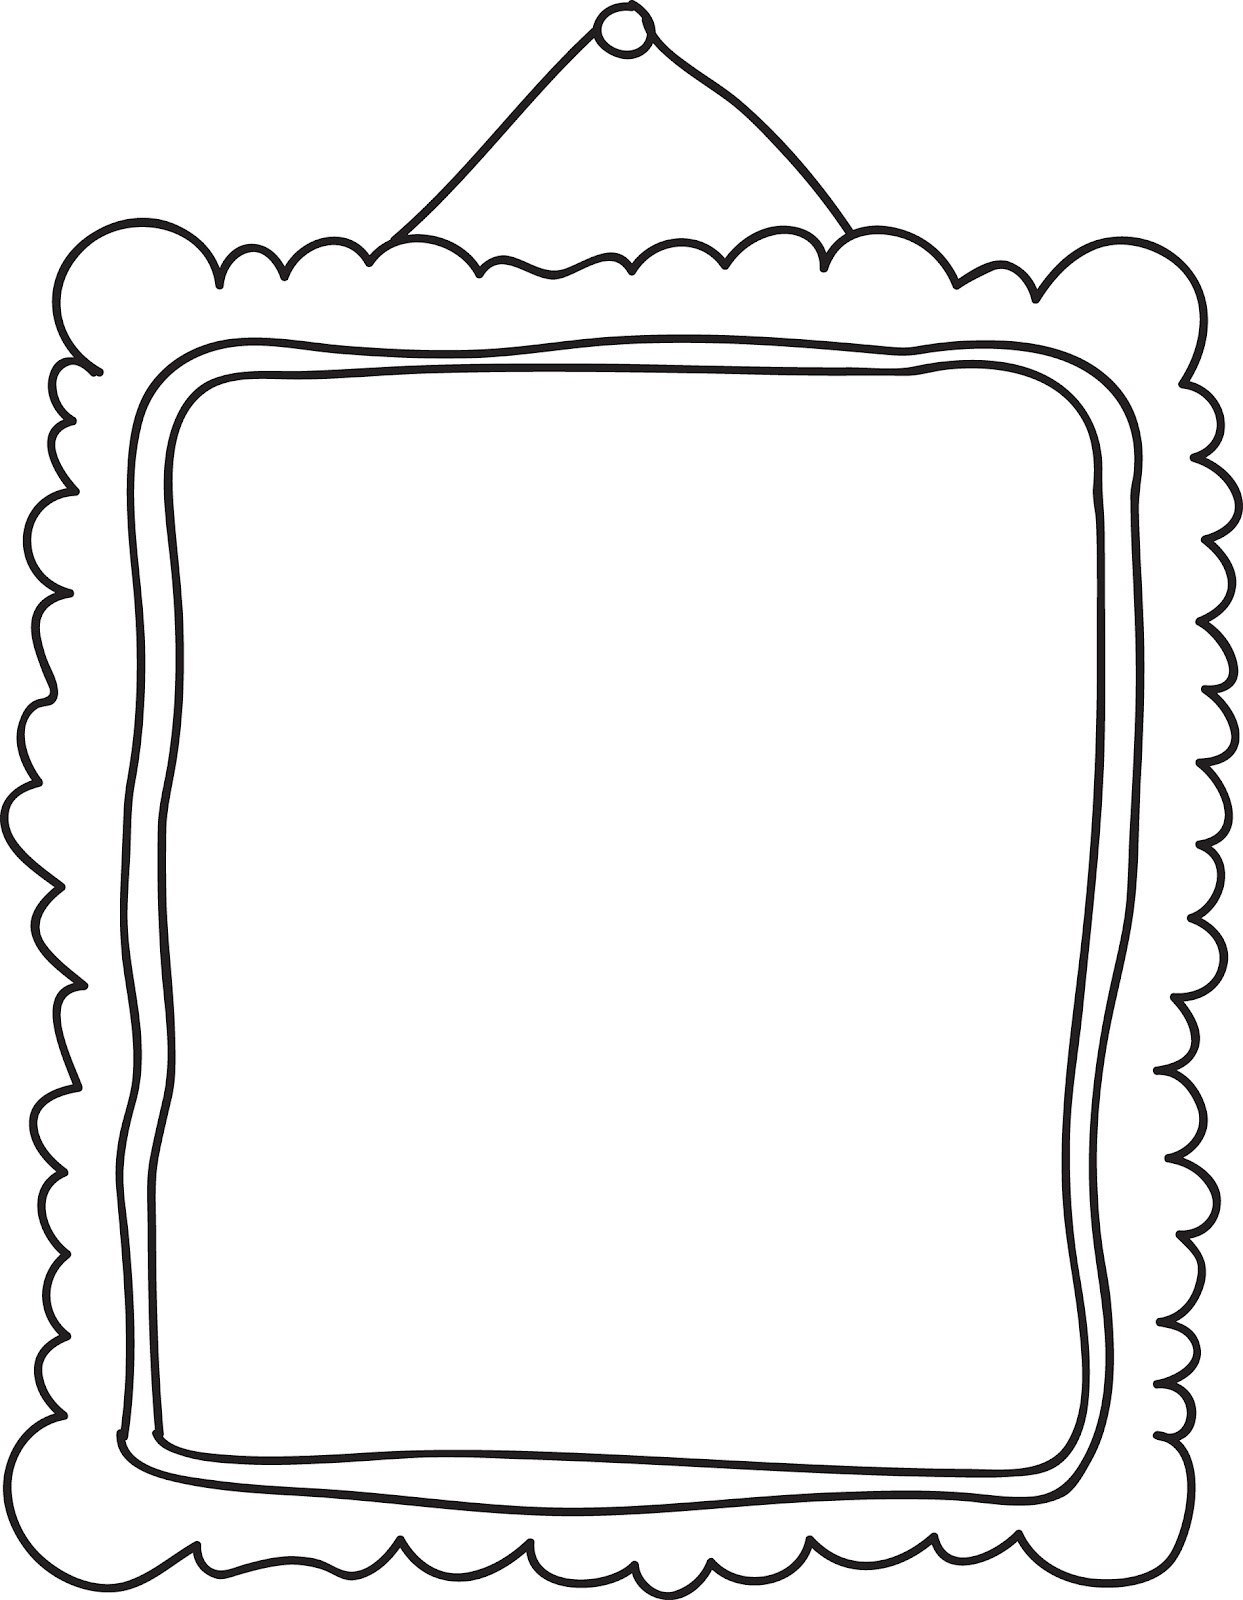 Free Frames Clipart-Free Frames Clipart-16